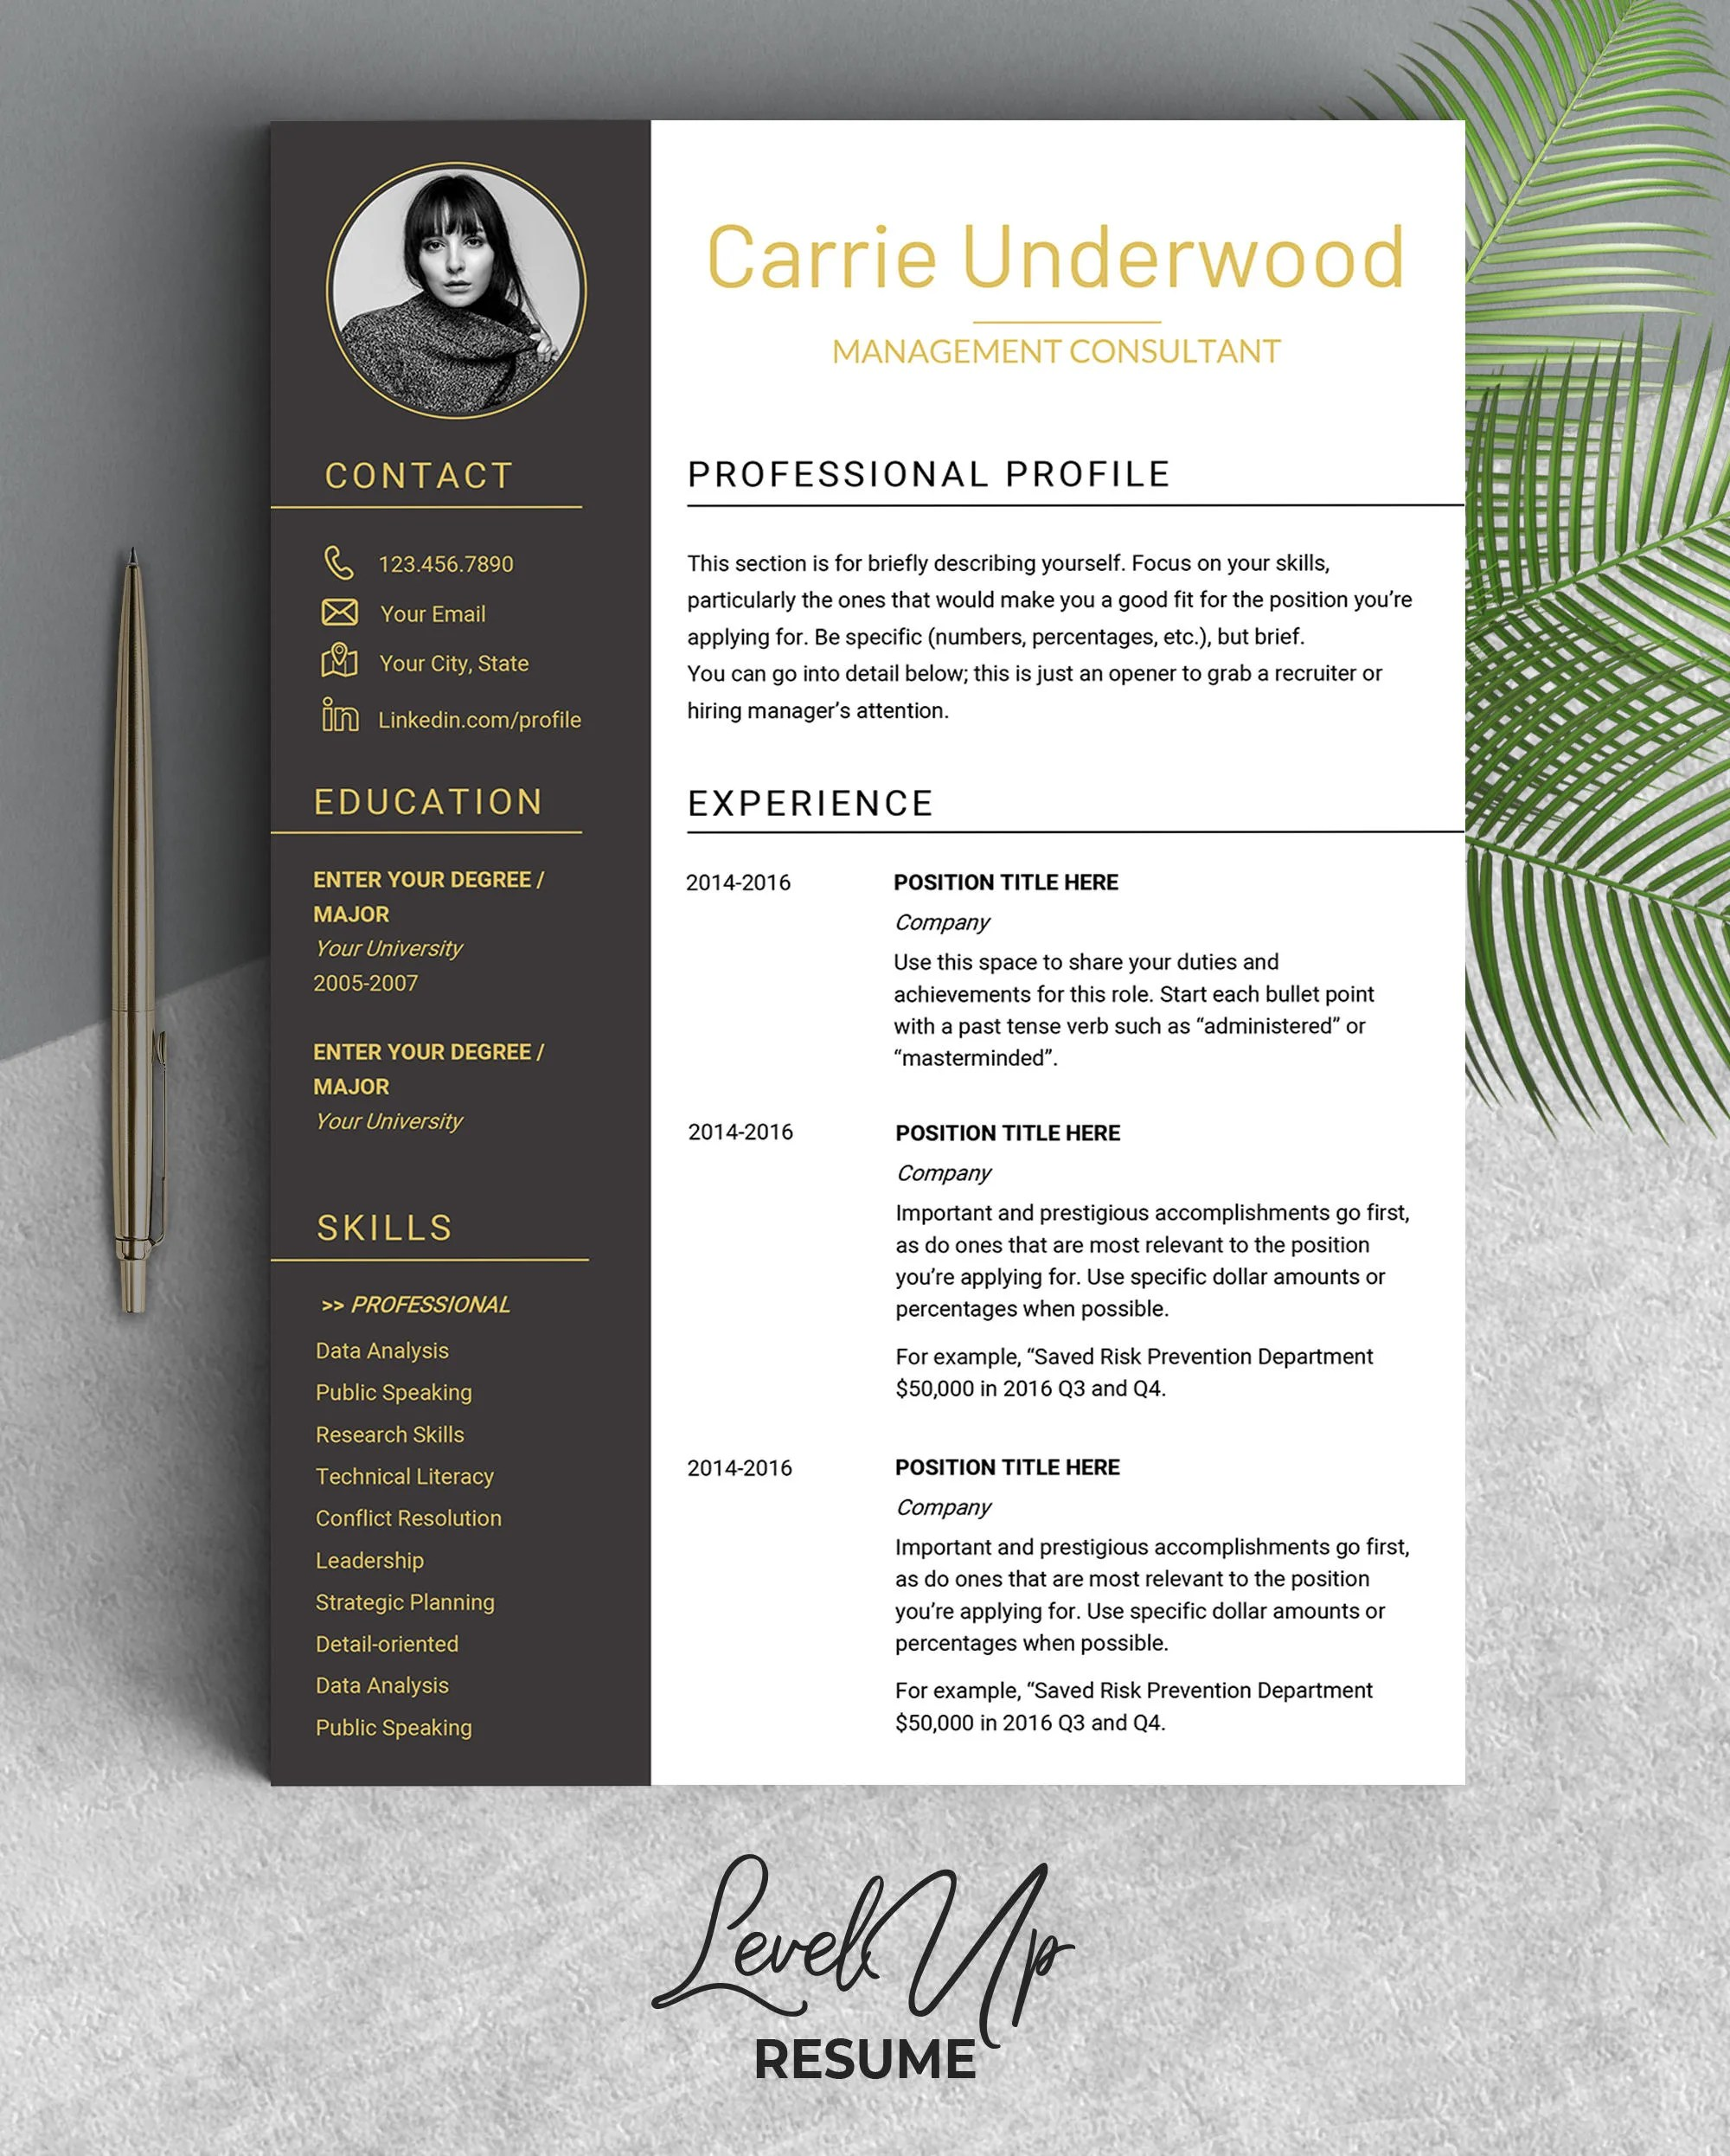 Resume template Modern resume with photo Design resume Etsy